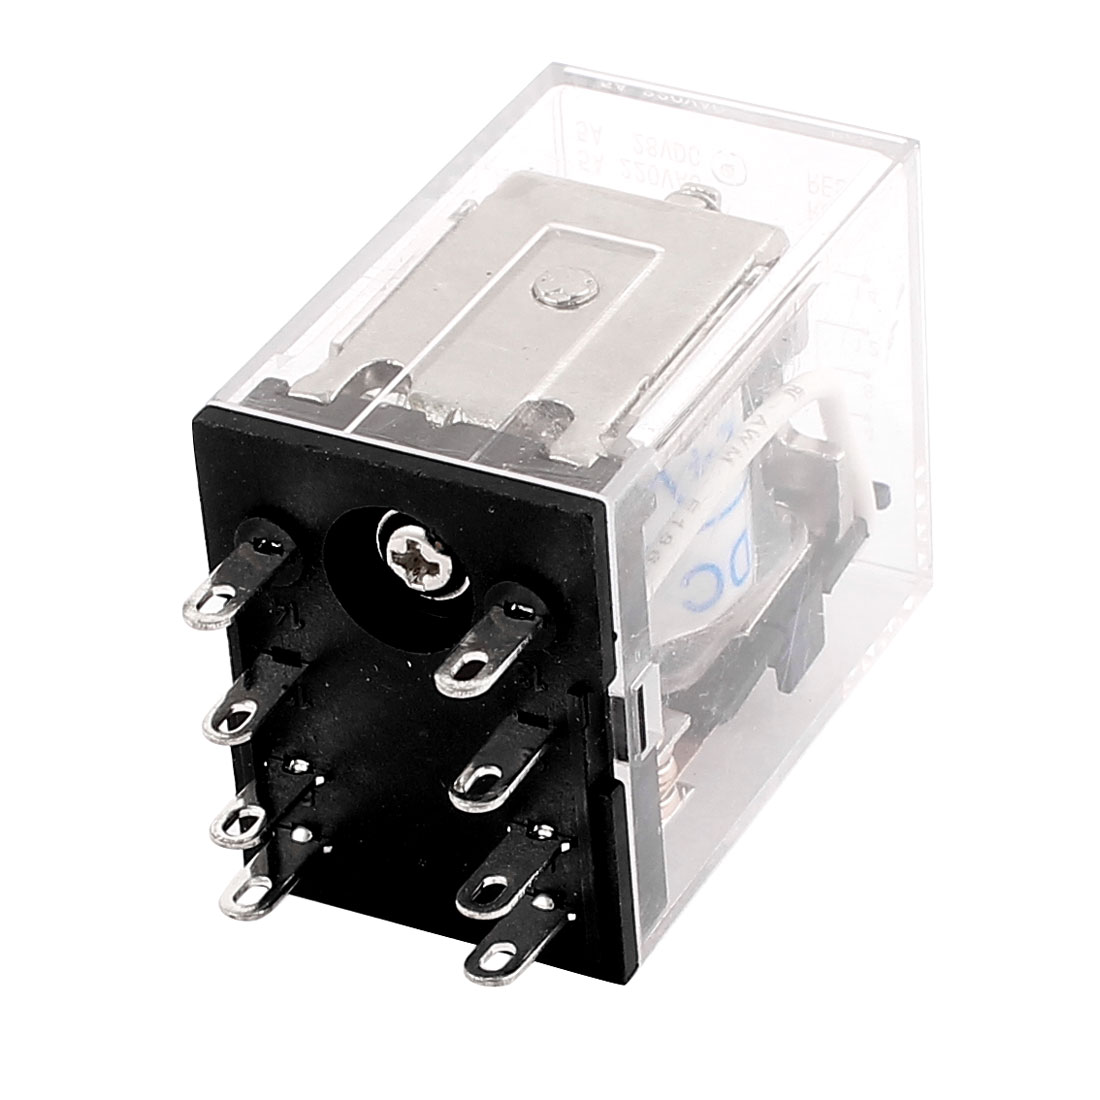 DC 24V Coil 8 Pin 2NO 2NC General Purpose Mini Electromagnetic Power Relay